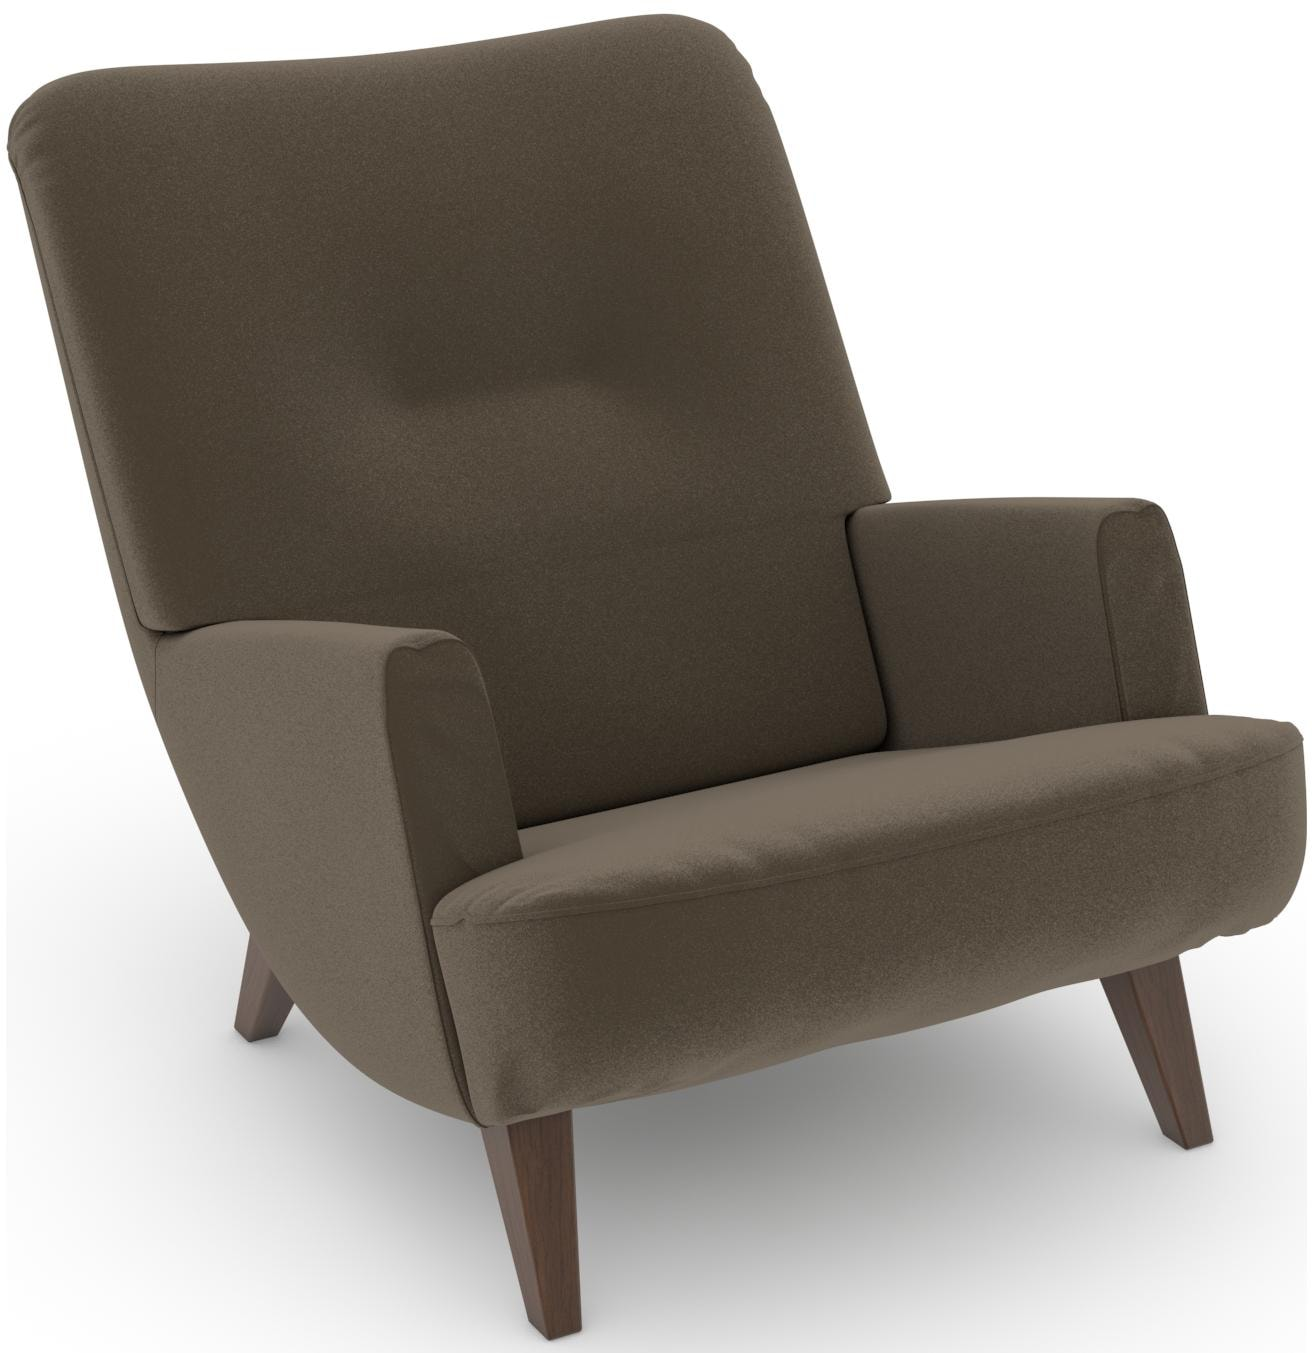 Max Winzer Loungesessel build-a-chair Borano